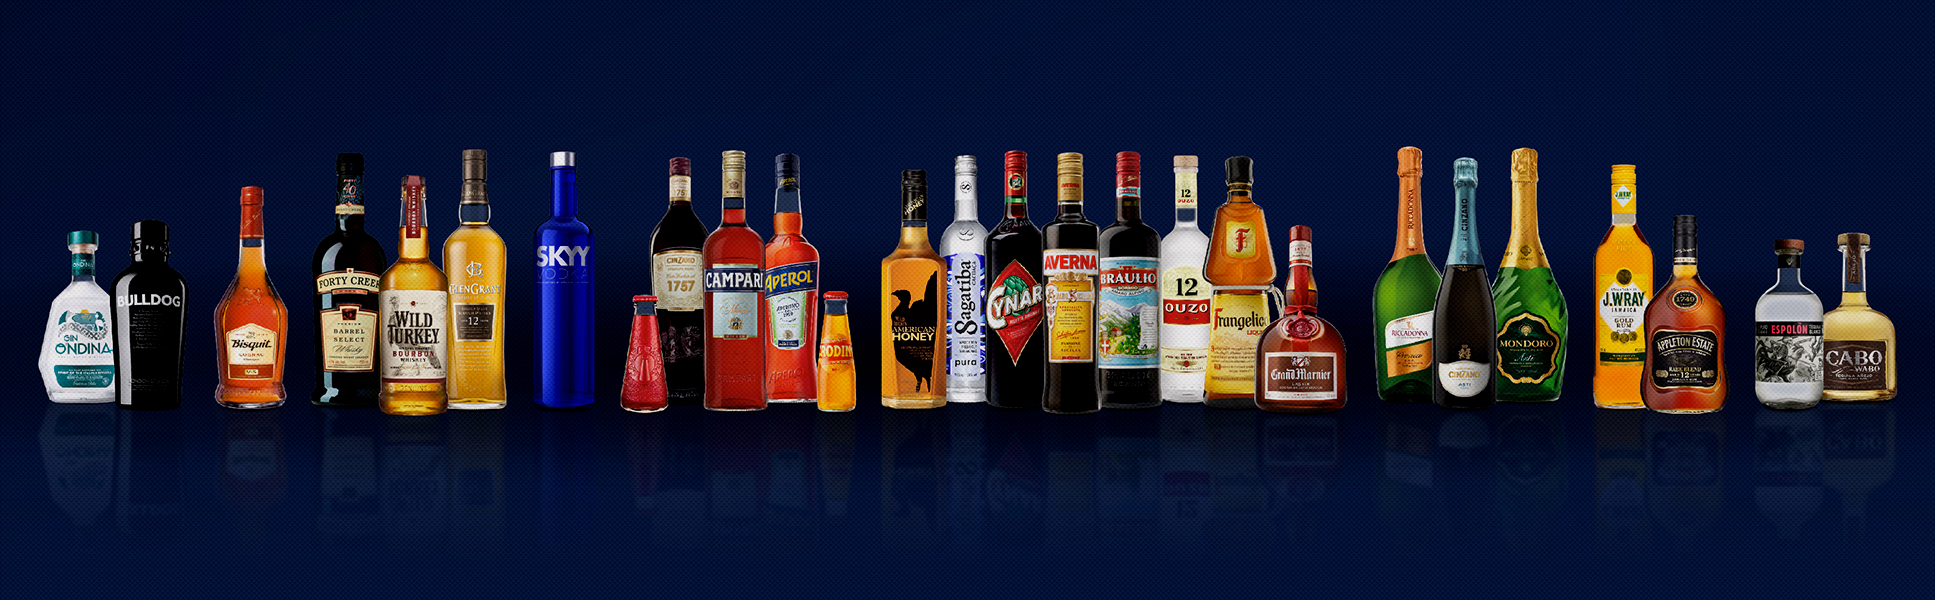 Campari Group rapidly pivots to digital outreach & gains new customer insights